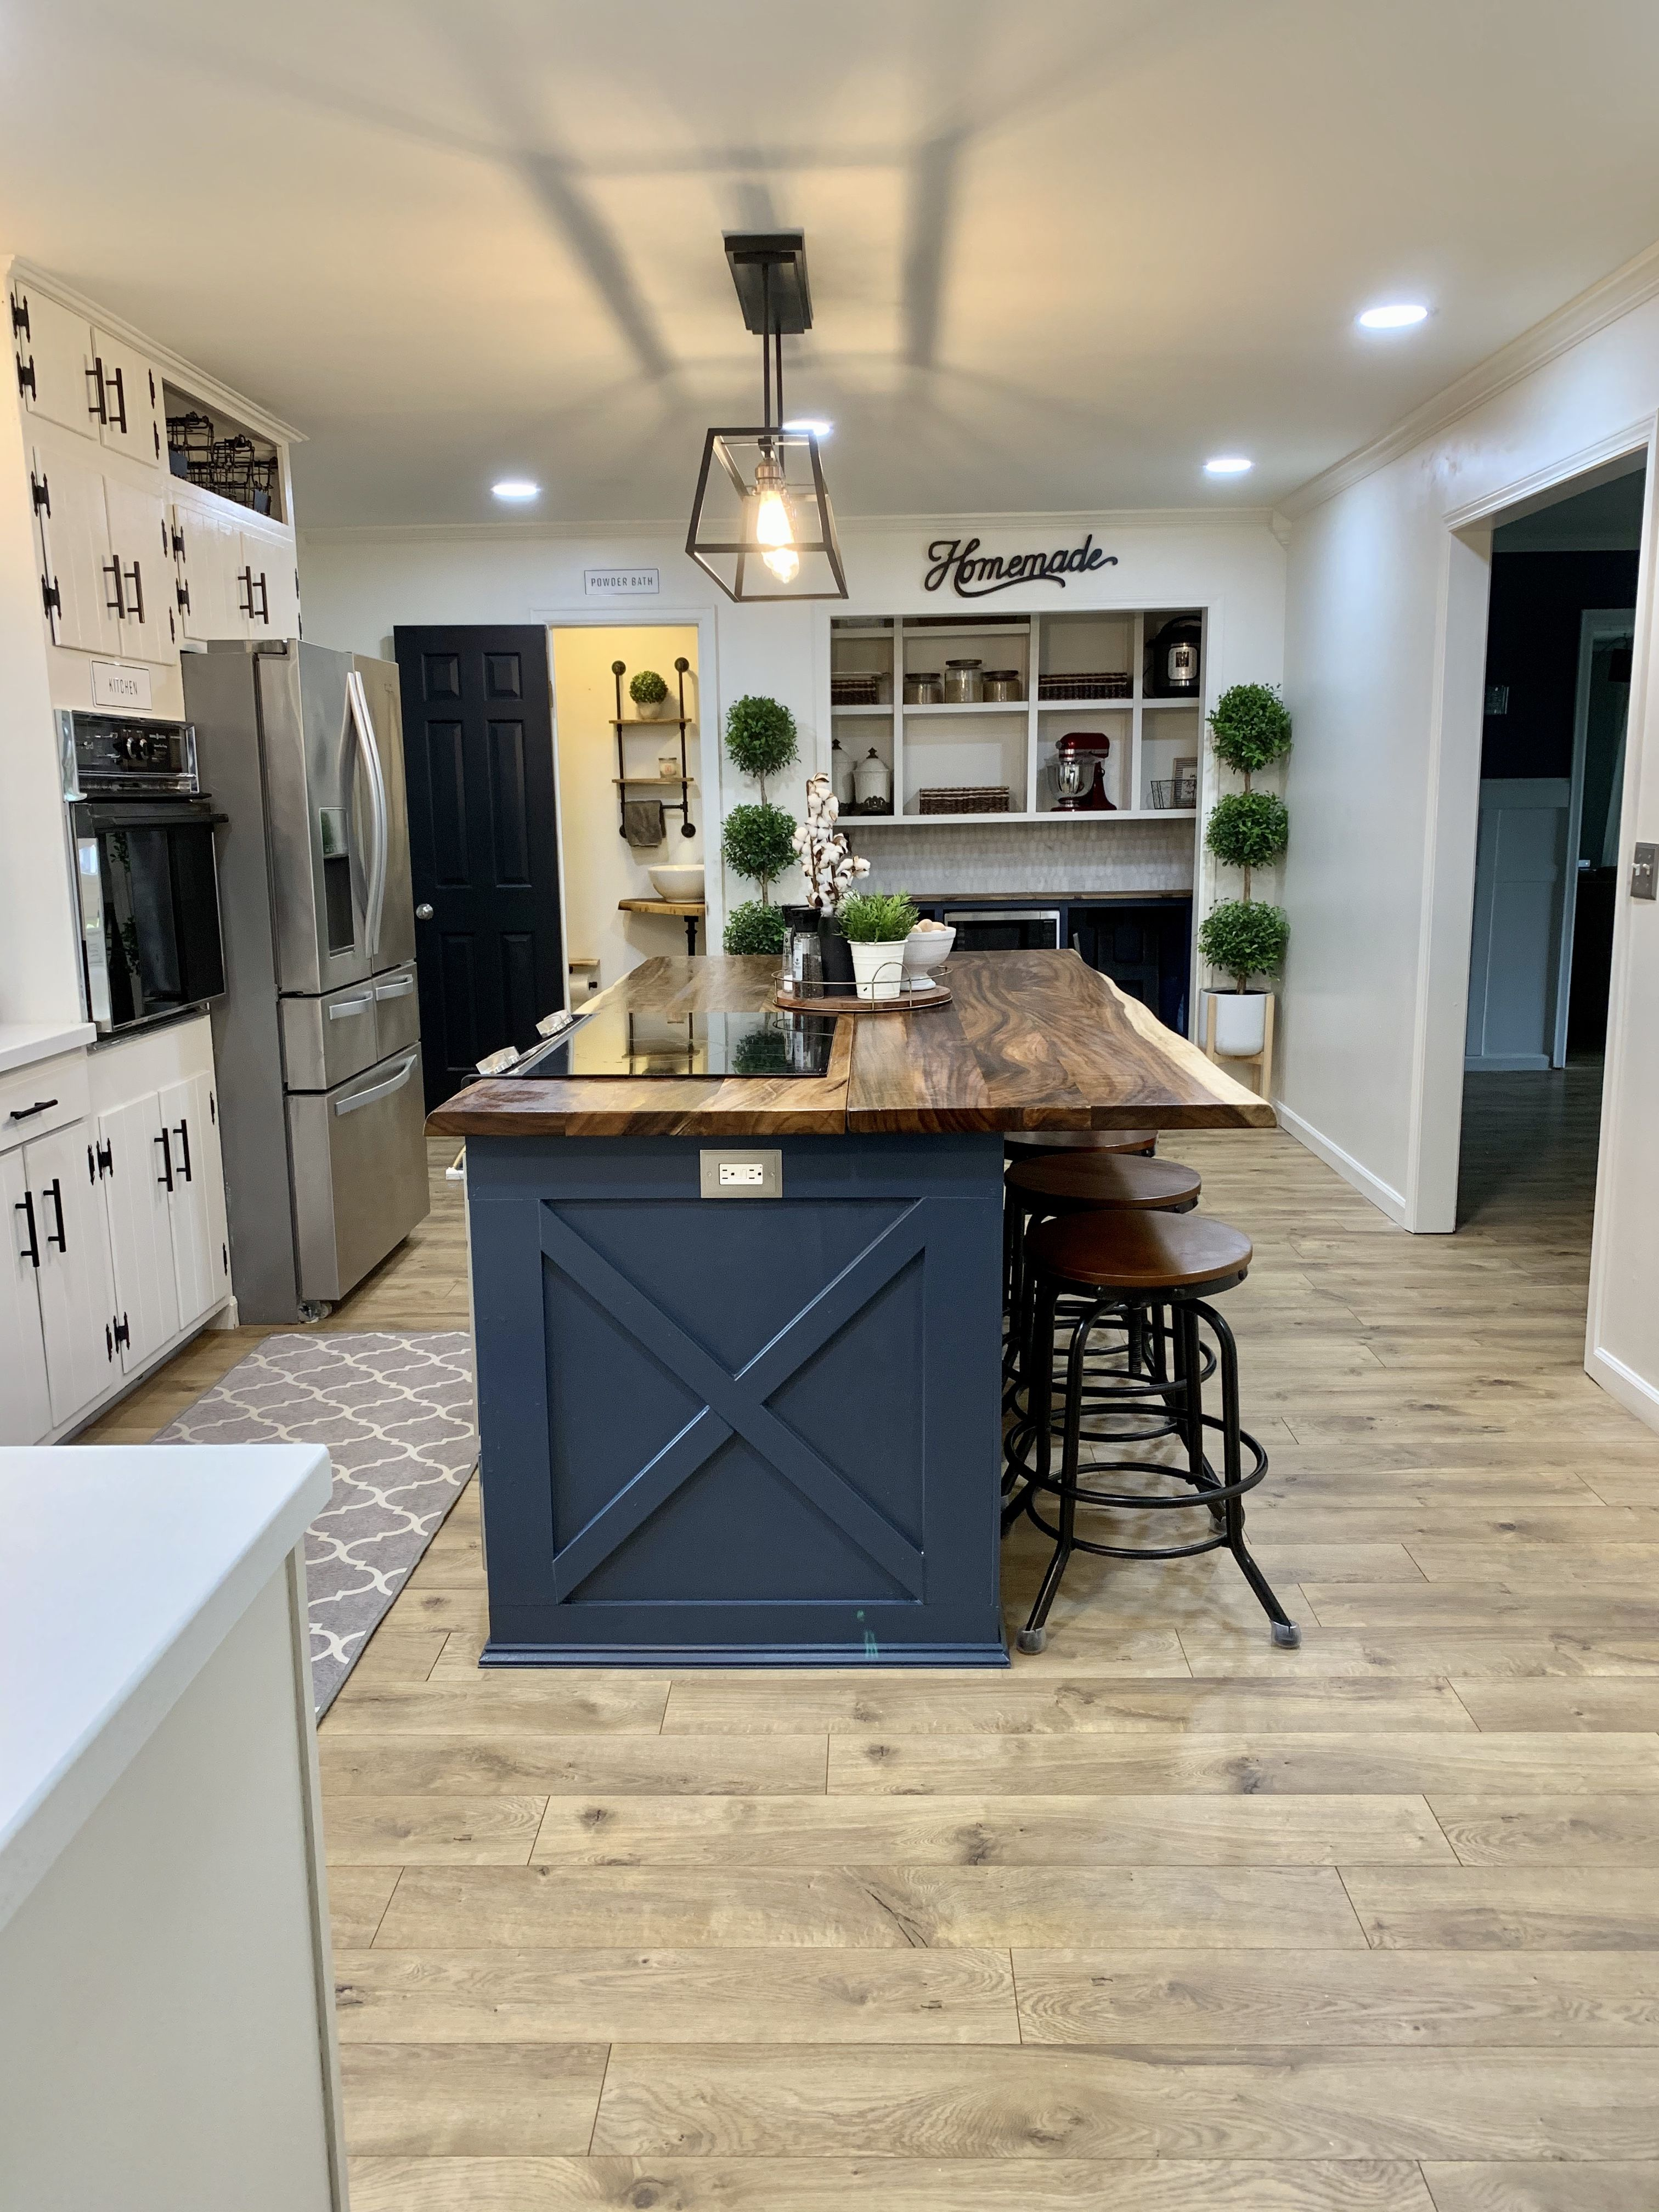 Modern Farmhouse Kitchen With Butcher Block Island In 2020 Kitchen Remodel Small Modern Farmhouse Kitchens Ikea Kitchen Island